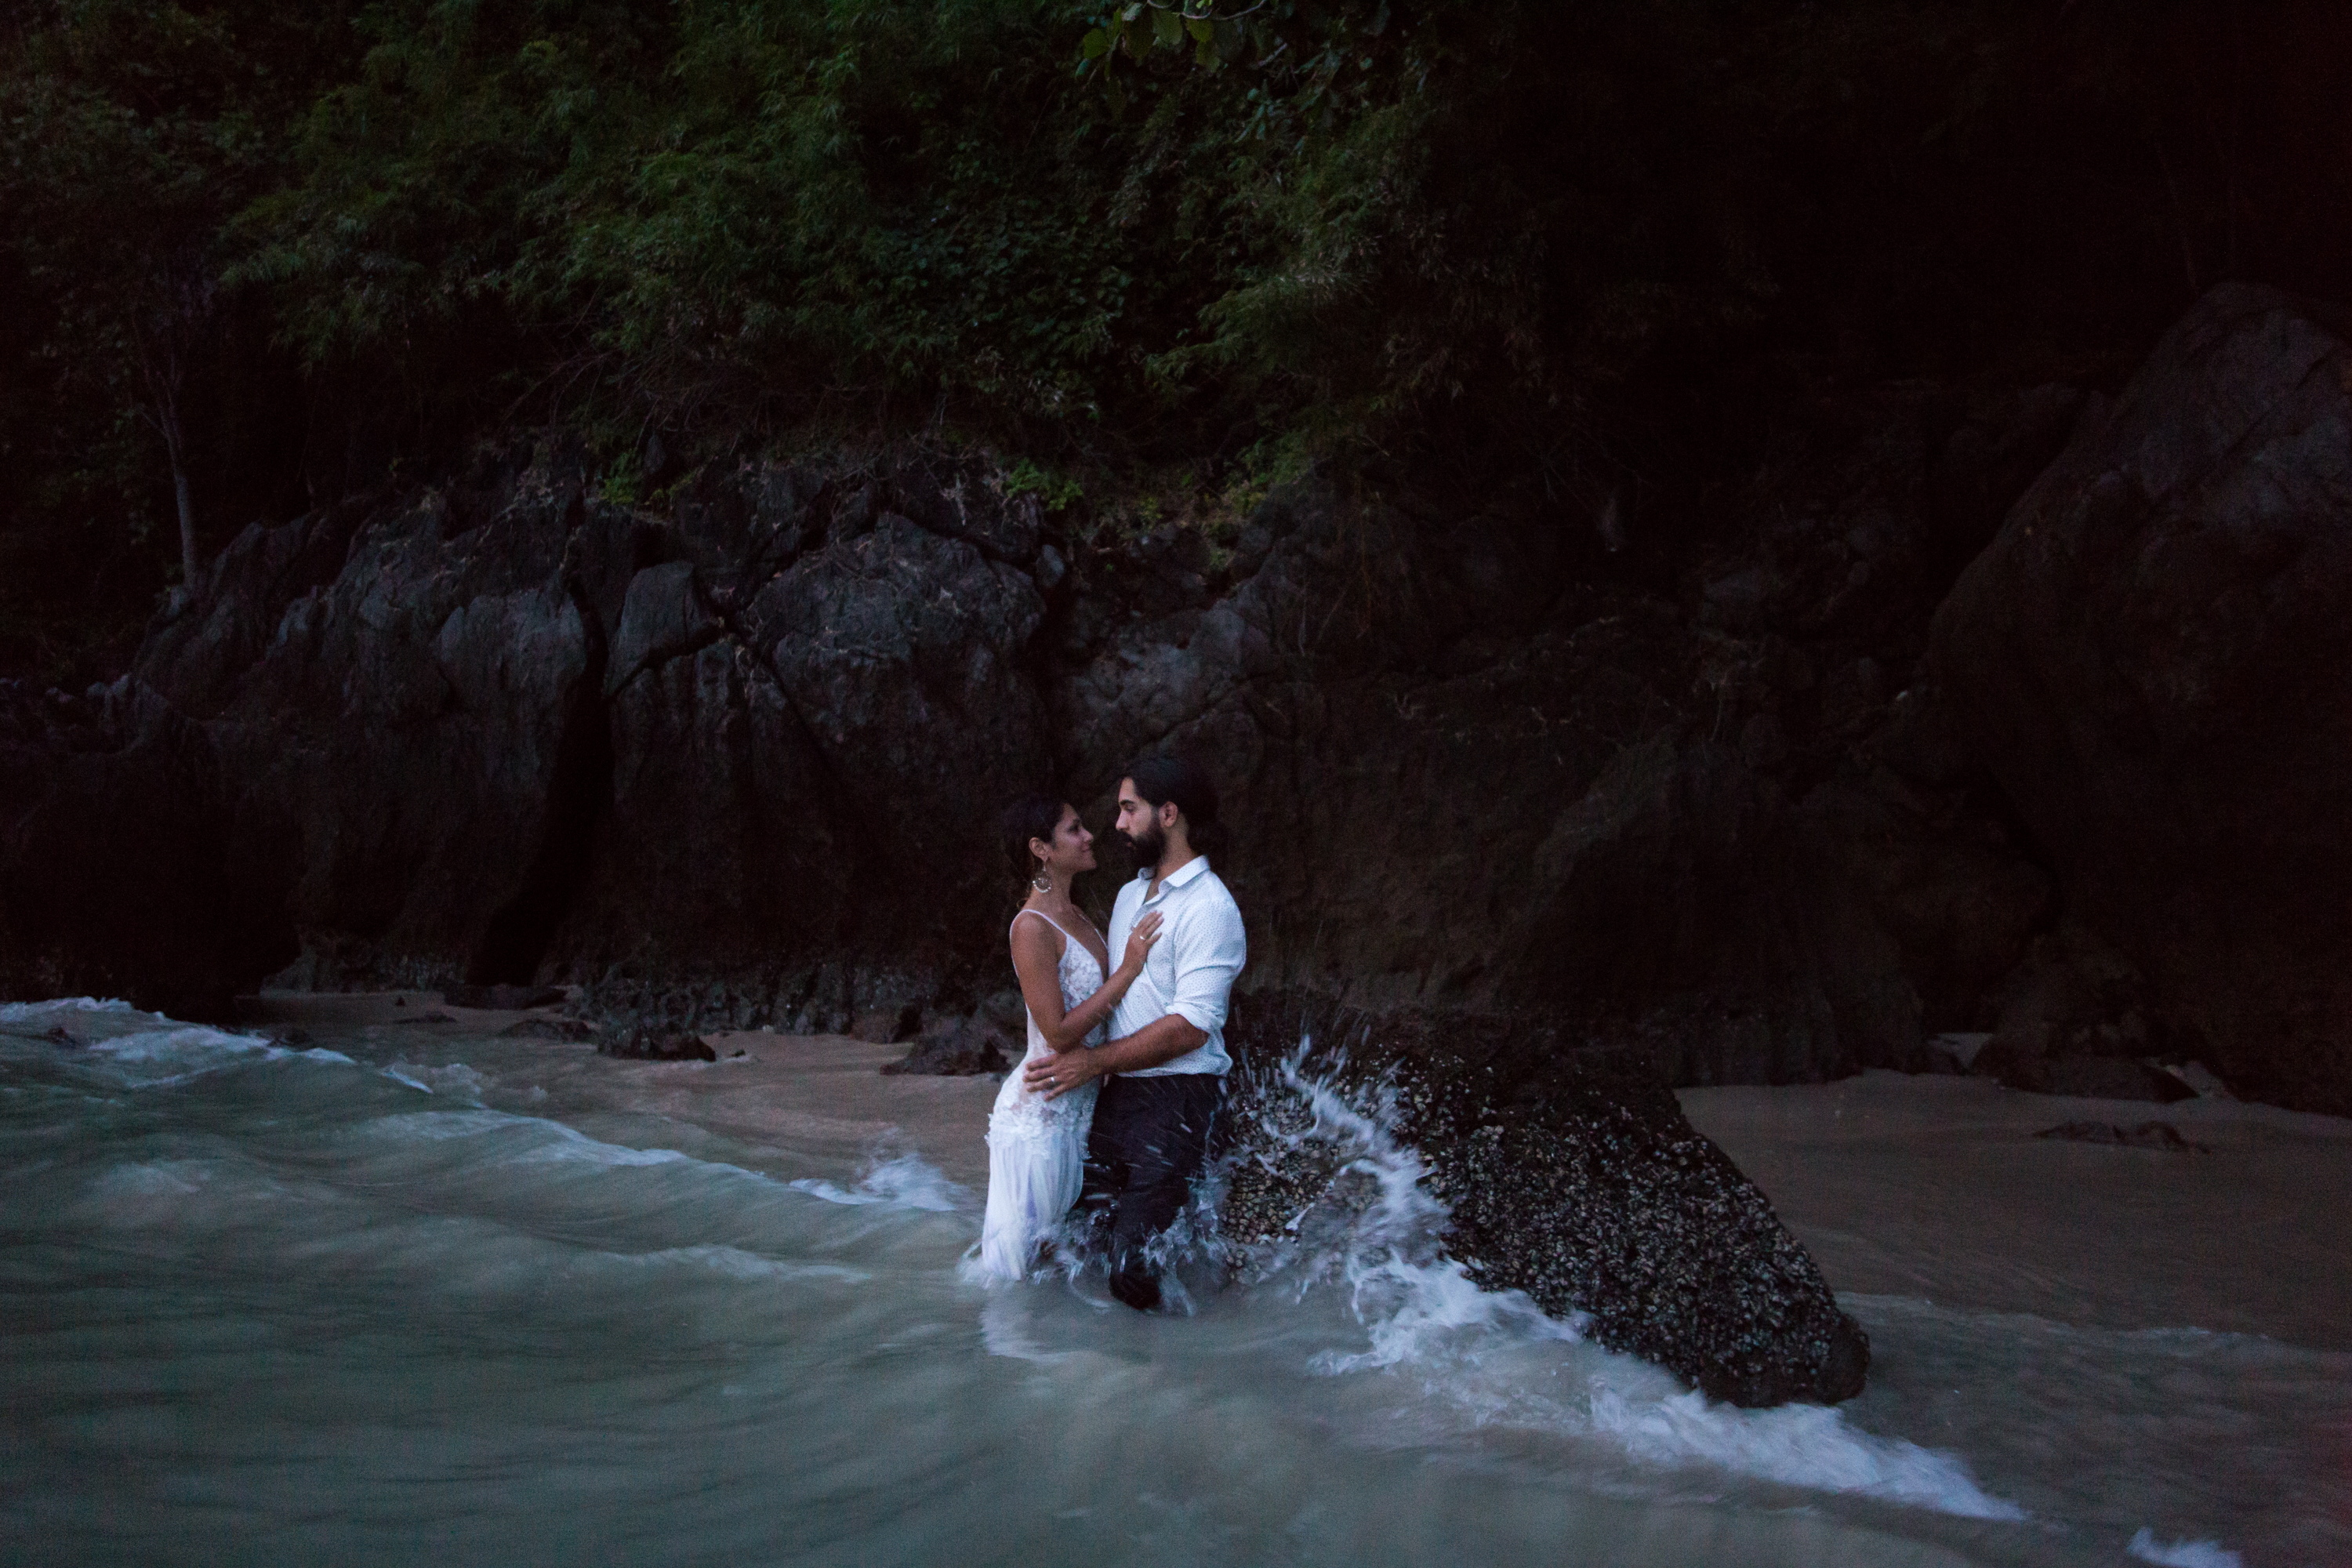 Waves Ocean Sea Railay Beach Thailand Krabi Zsuzsi Pal Photography Wedding Sunset